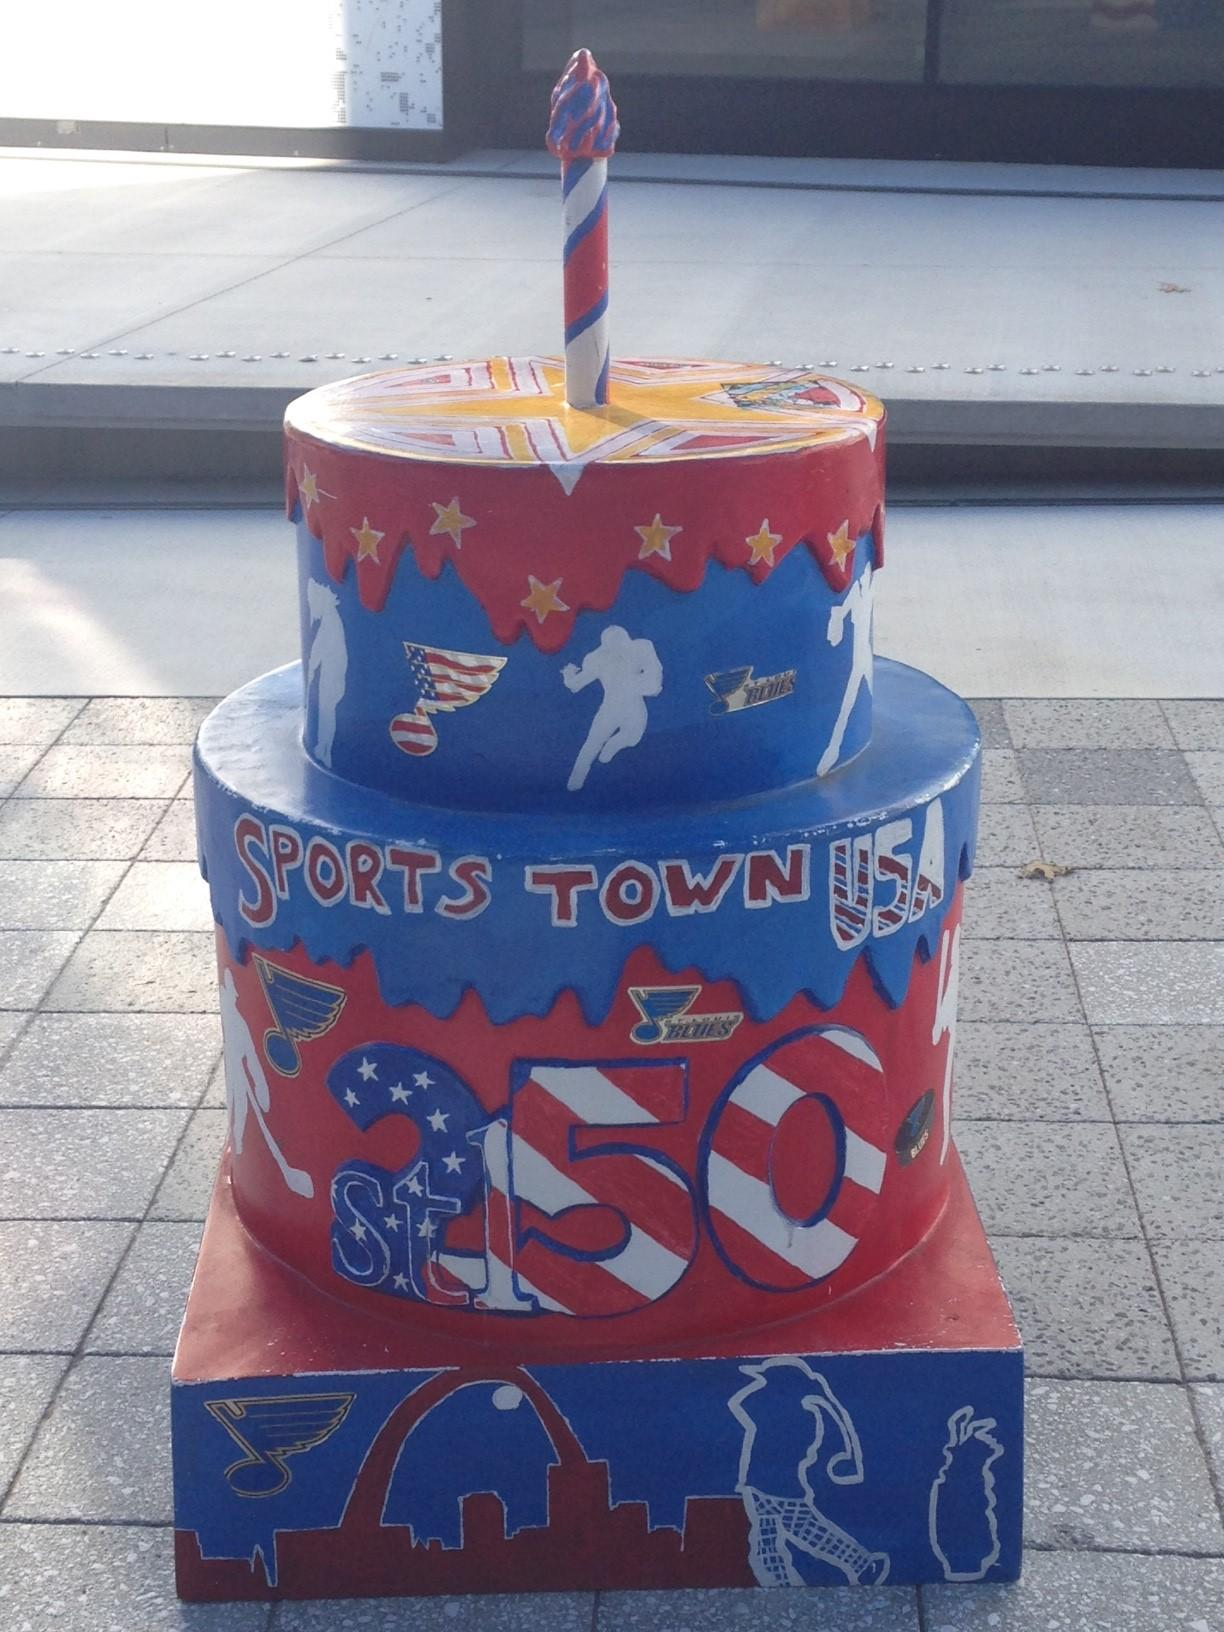 Stl250 Birthday Cakes Arriving In Grand Center St Louis Public Radio